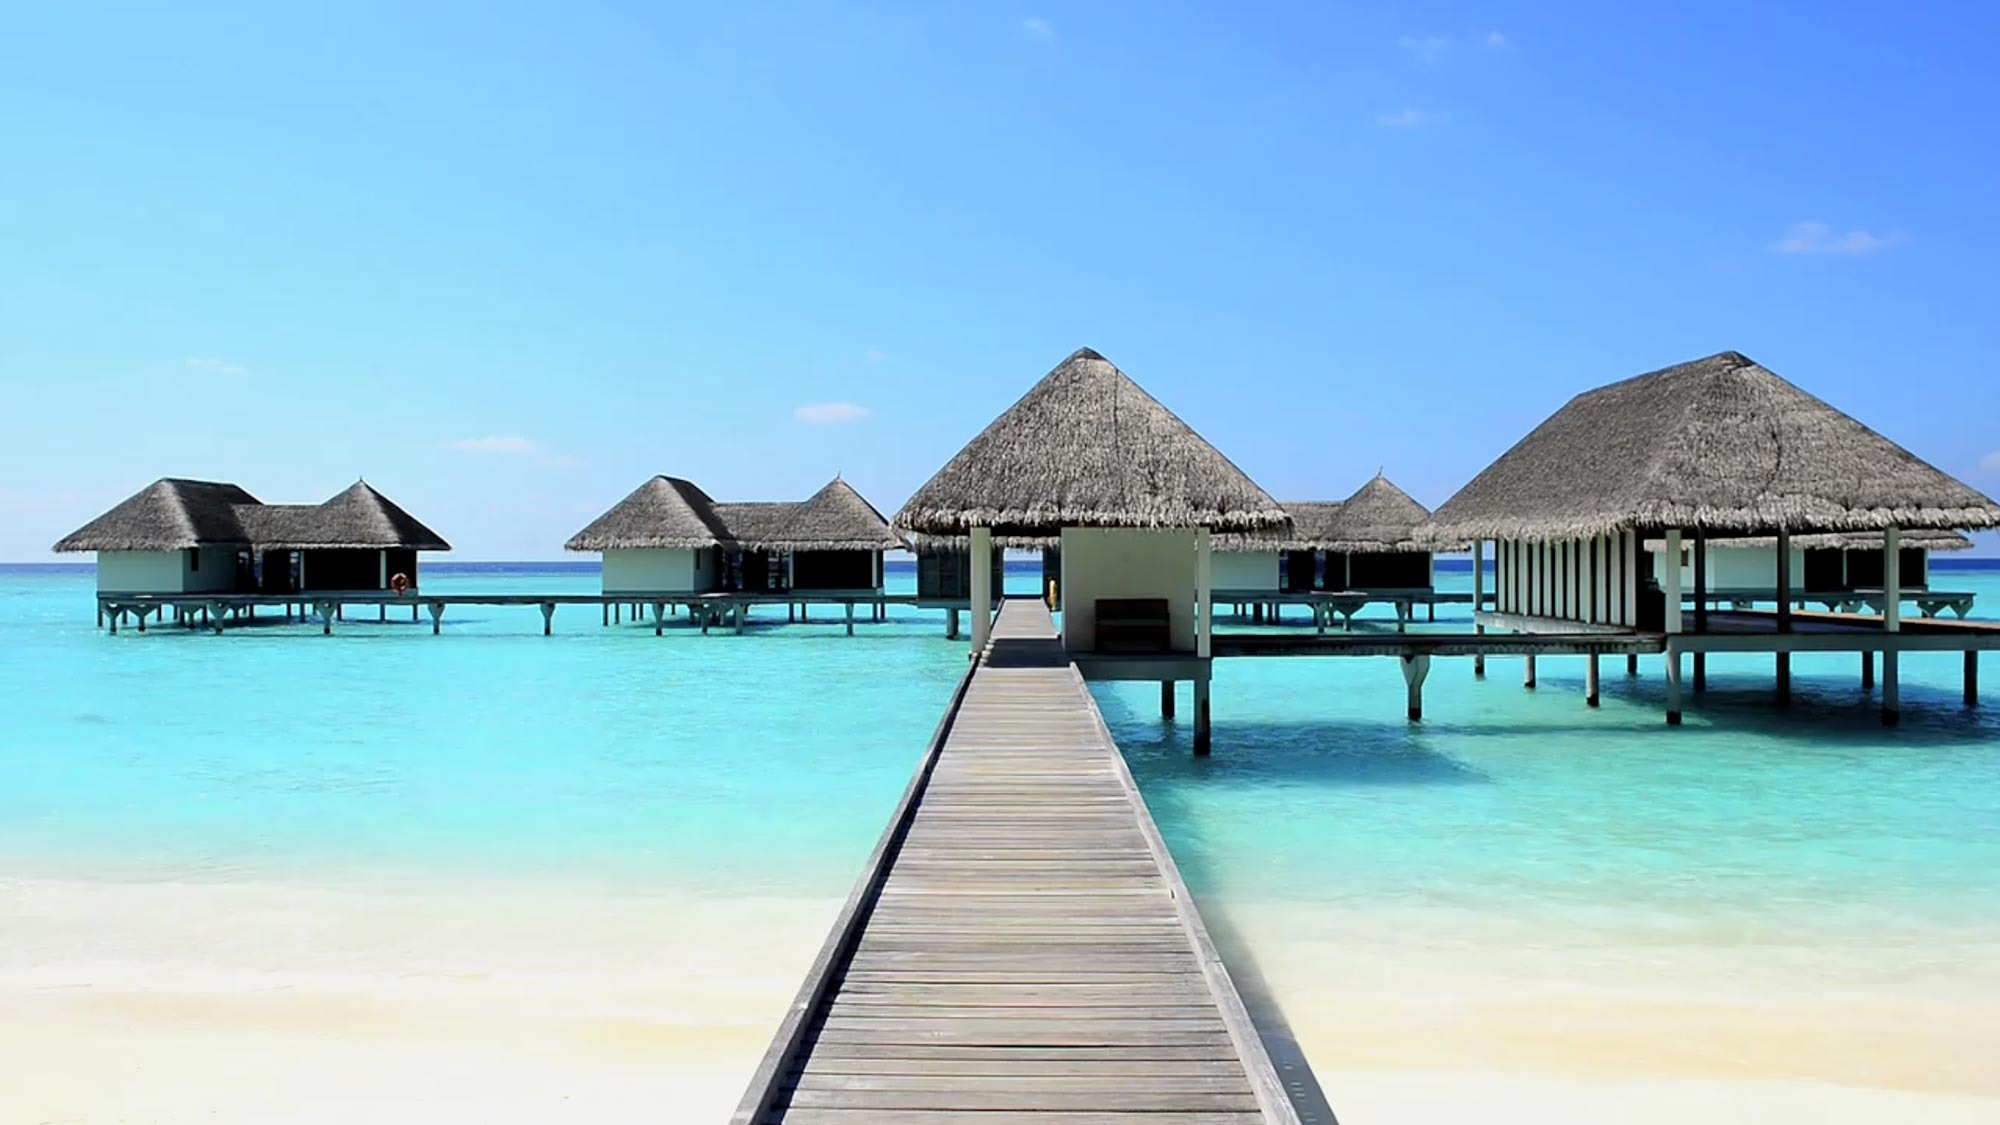 The Maldives (/ˈmÉ'ldiːvz/ or /ˈmɔːldaɪvz/ (About this sound listen); Dhivehi: Þ‹Þ¨ÞˆÞ¬Þ€Þ¨ÞƒÞ§Þ‡Þ°Þ–Þ¬ Dhivehi Raa'jey), officially the Republic of Maldives, is a South Asian sovereign state, located in the Indian Ocean, situated in the Arabian Sea. It lies southwest of Sri Lanka and India. The chain of 26 atolls stretches from Ihavandhippolhu Atoll in the north to the Addu City in the south. Comprising a territory spanning roughly 298 square kilometres (115 sq mi), the Maldives is one of the world's most geographically dispersed countries, as well as the smallest Asian country by land area and population, with around 427,756 inhabitants. Malé is the capital and most populated city, traditionally called the